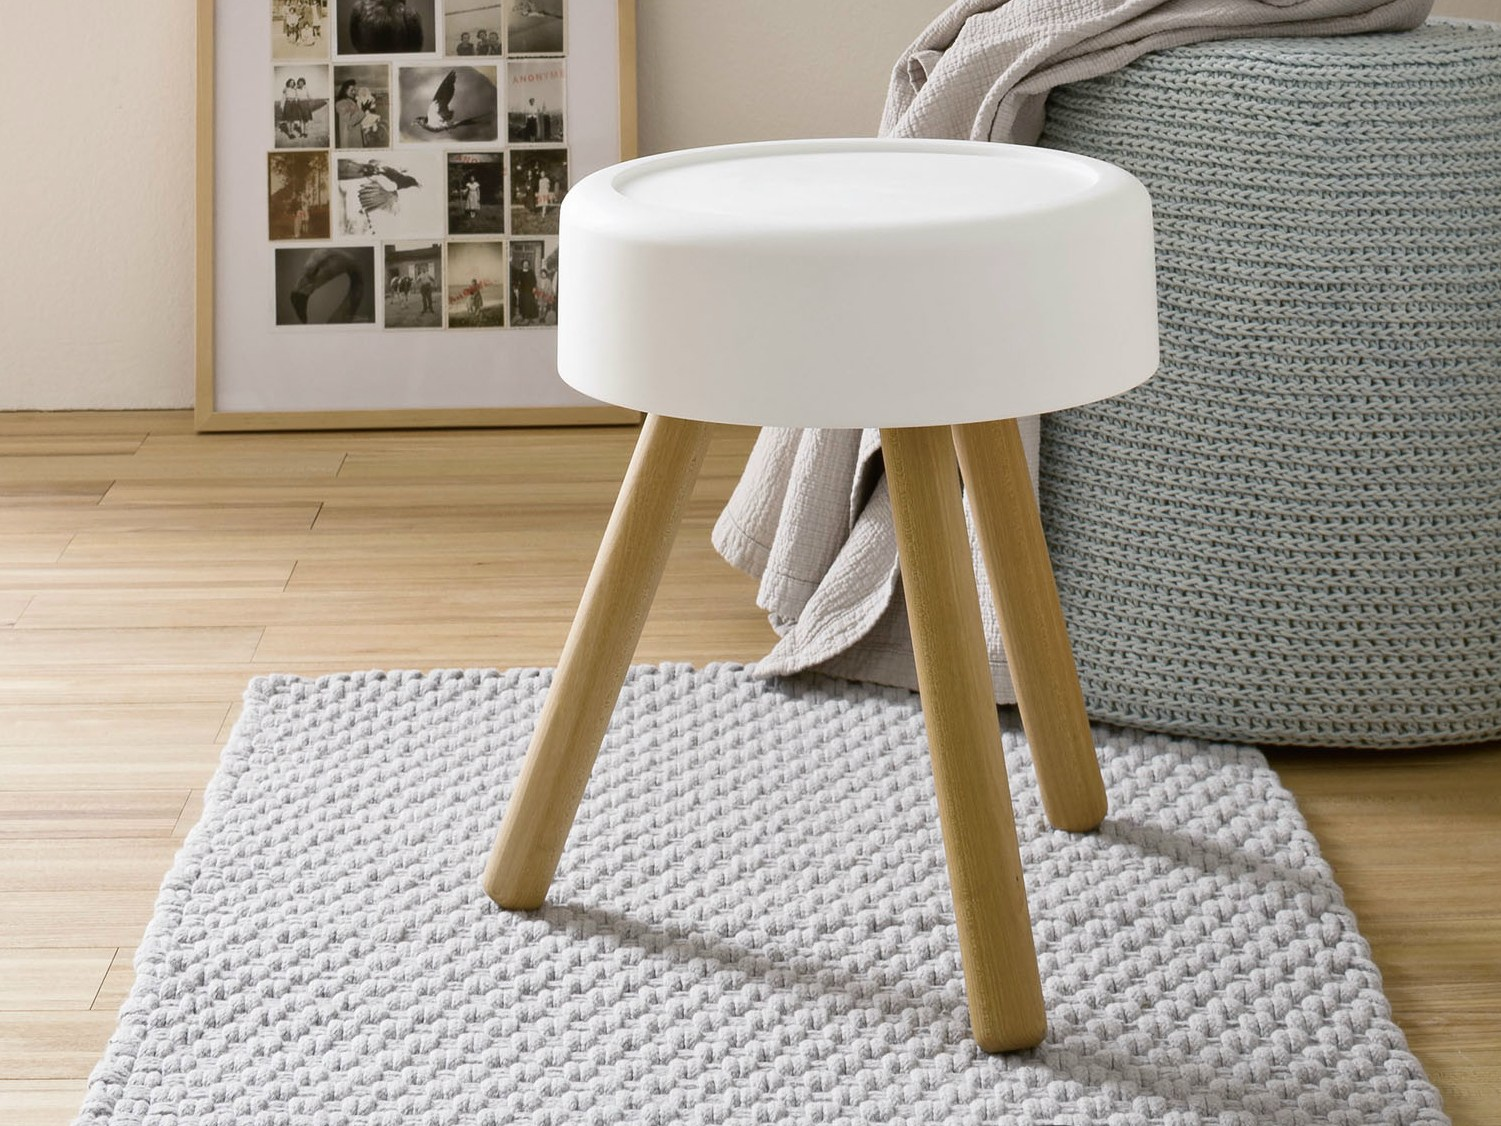 Great FONTE | Wooden Bathroom Stool Fonte Collection By Rexa Design Design Monica  Graffeo